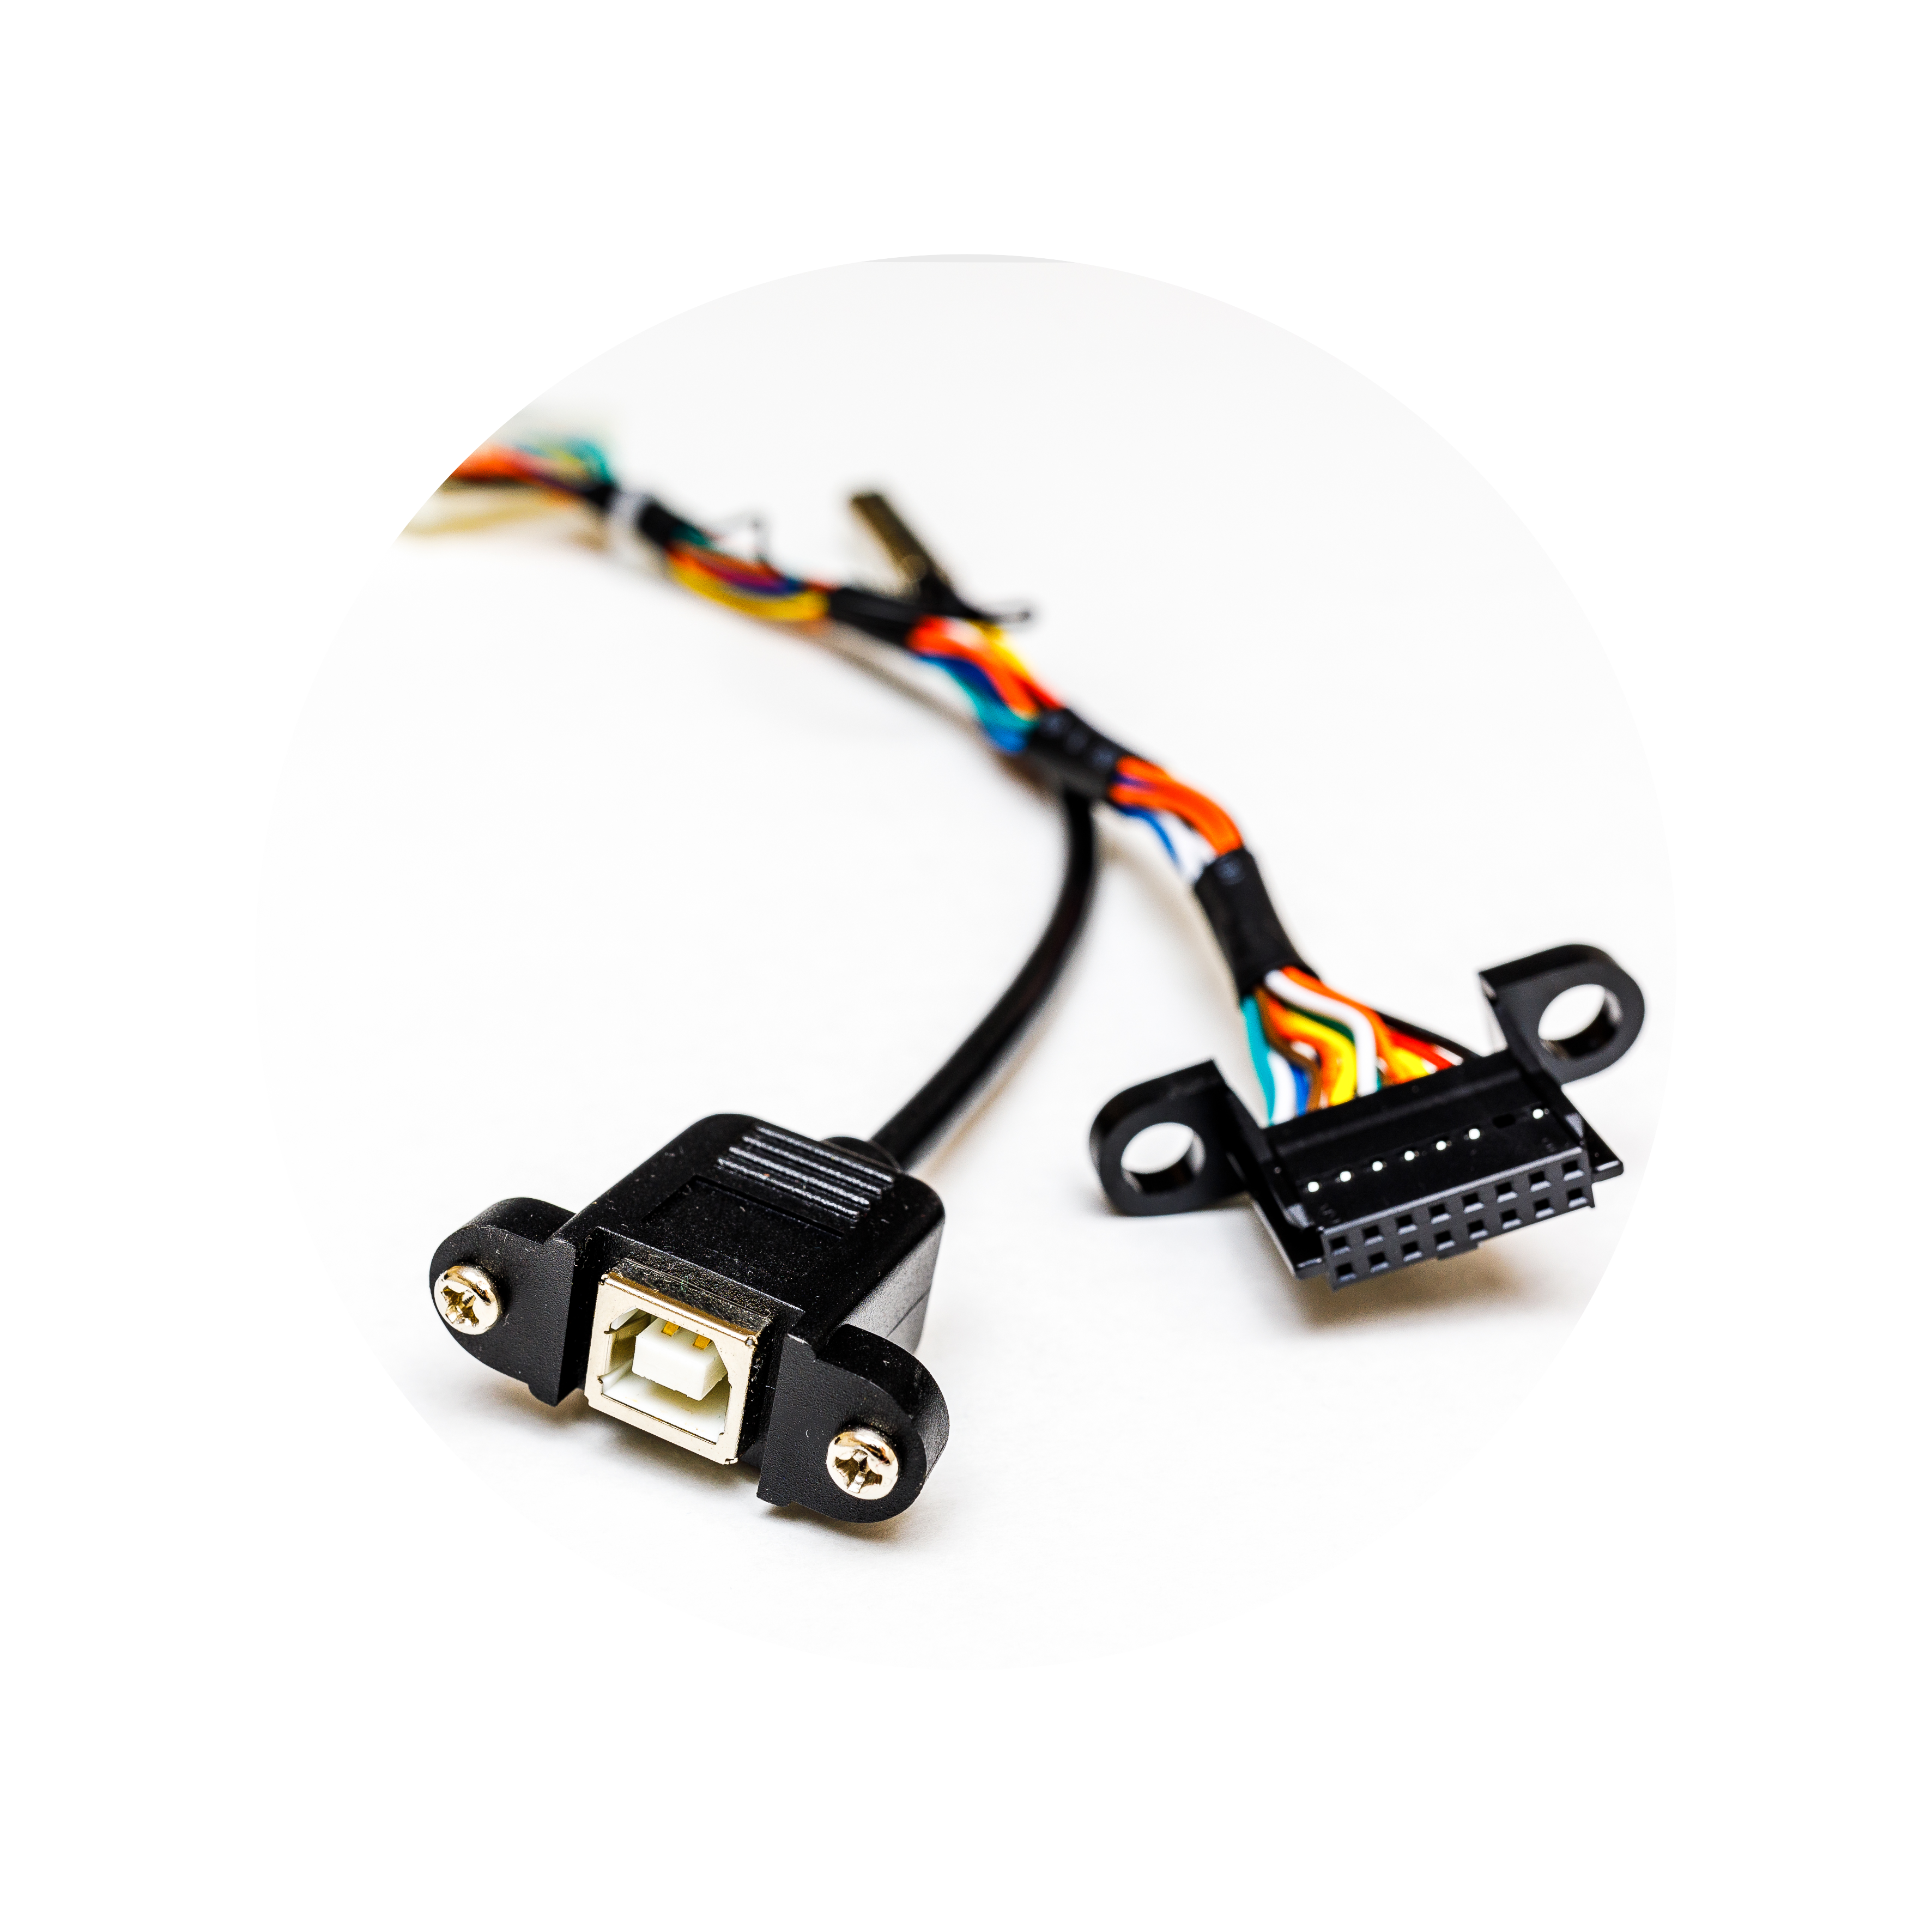 Leotronics cable assemblies